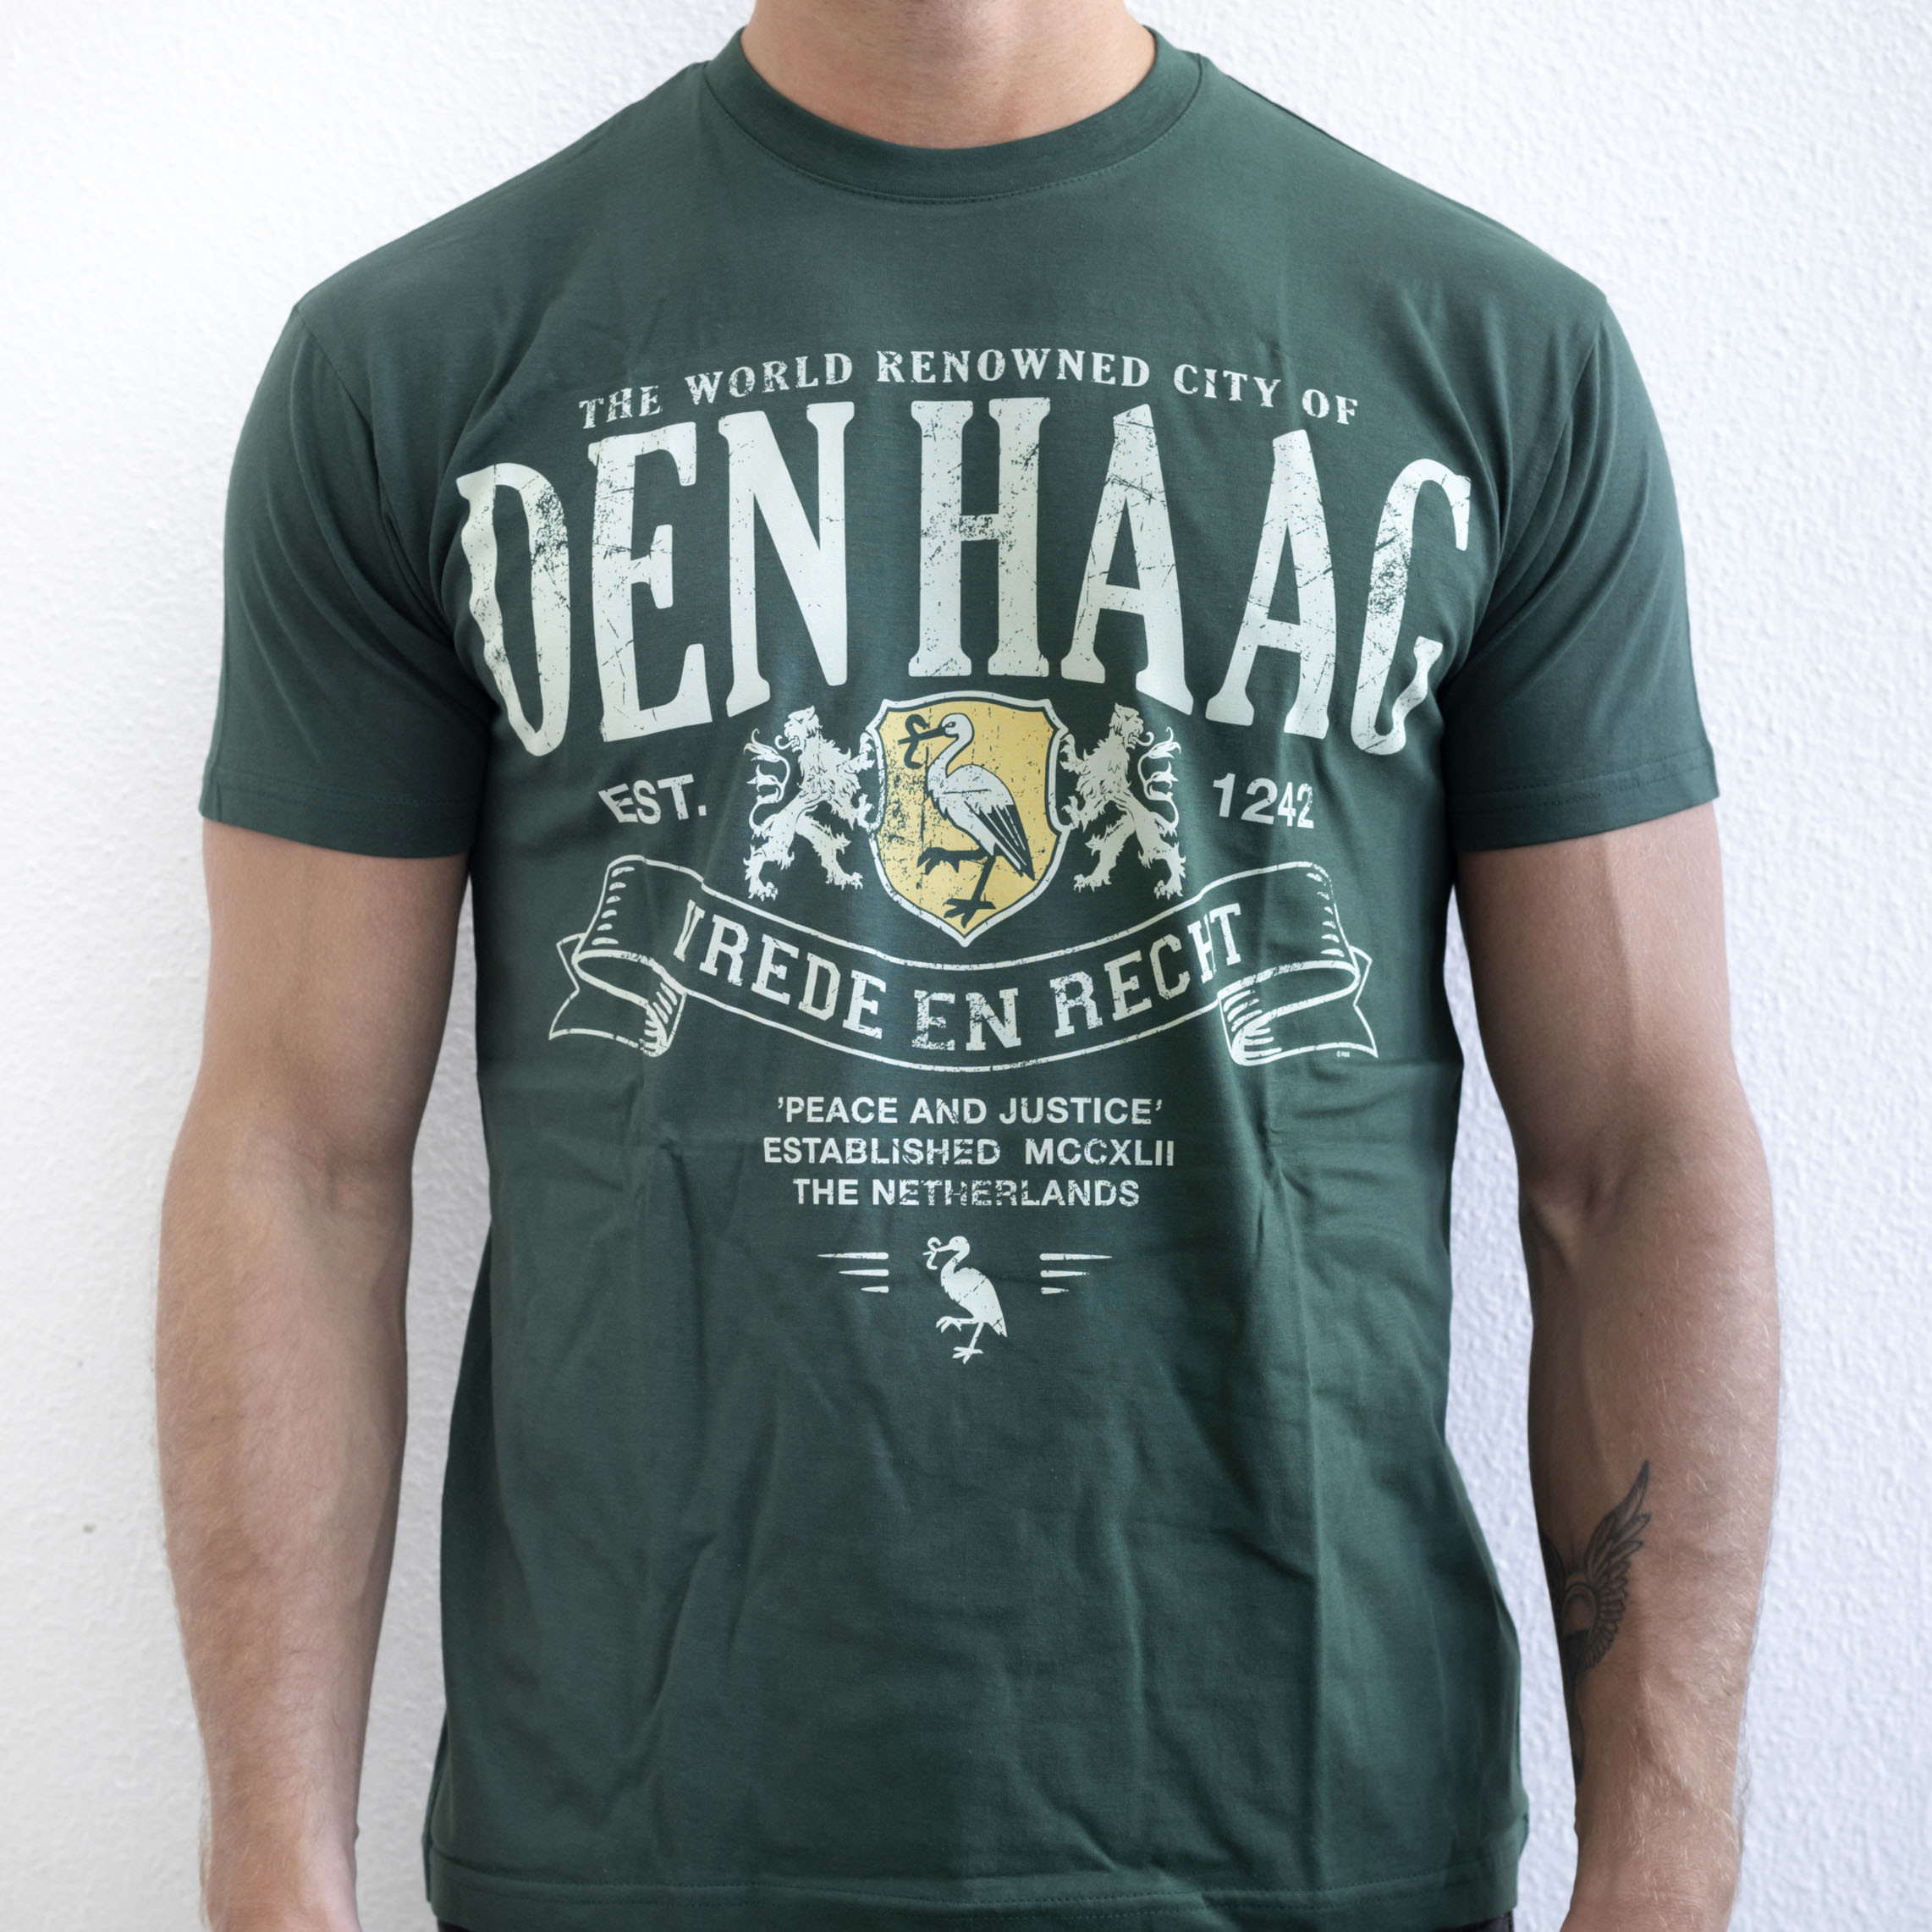 The Hague T-shirt Green maat Large